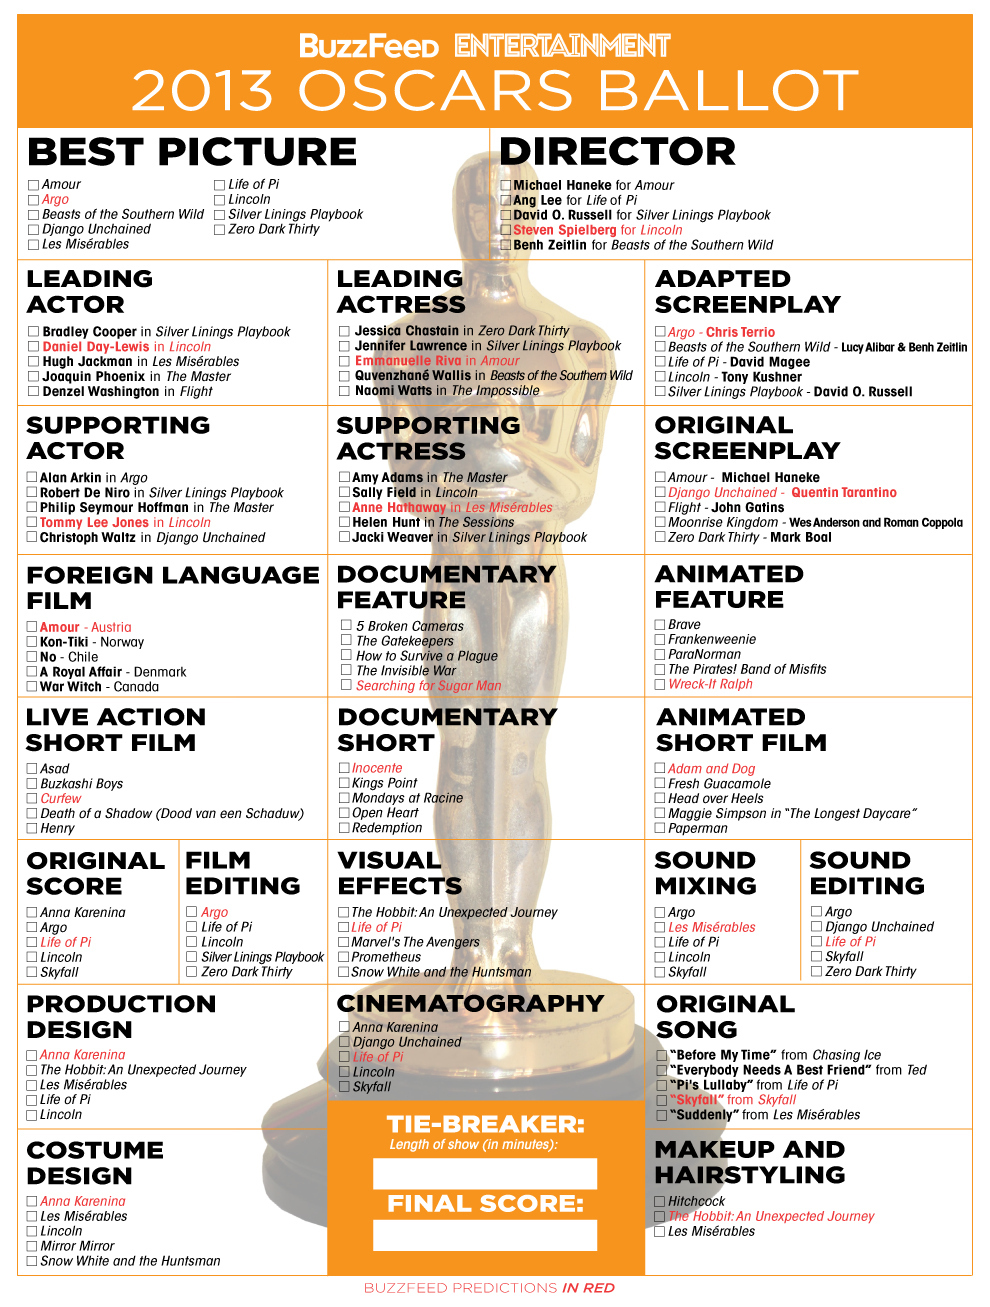 2017 Oscar Nominee Odds - Get Your Ballots Ready